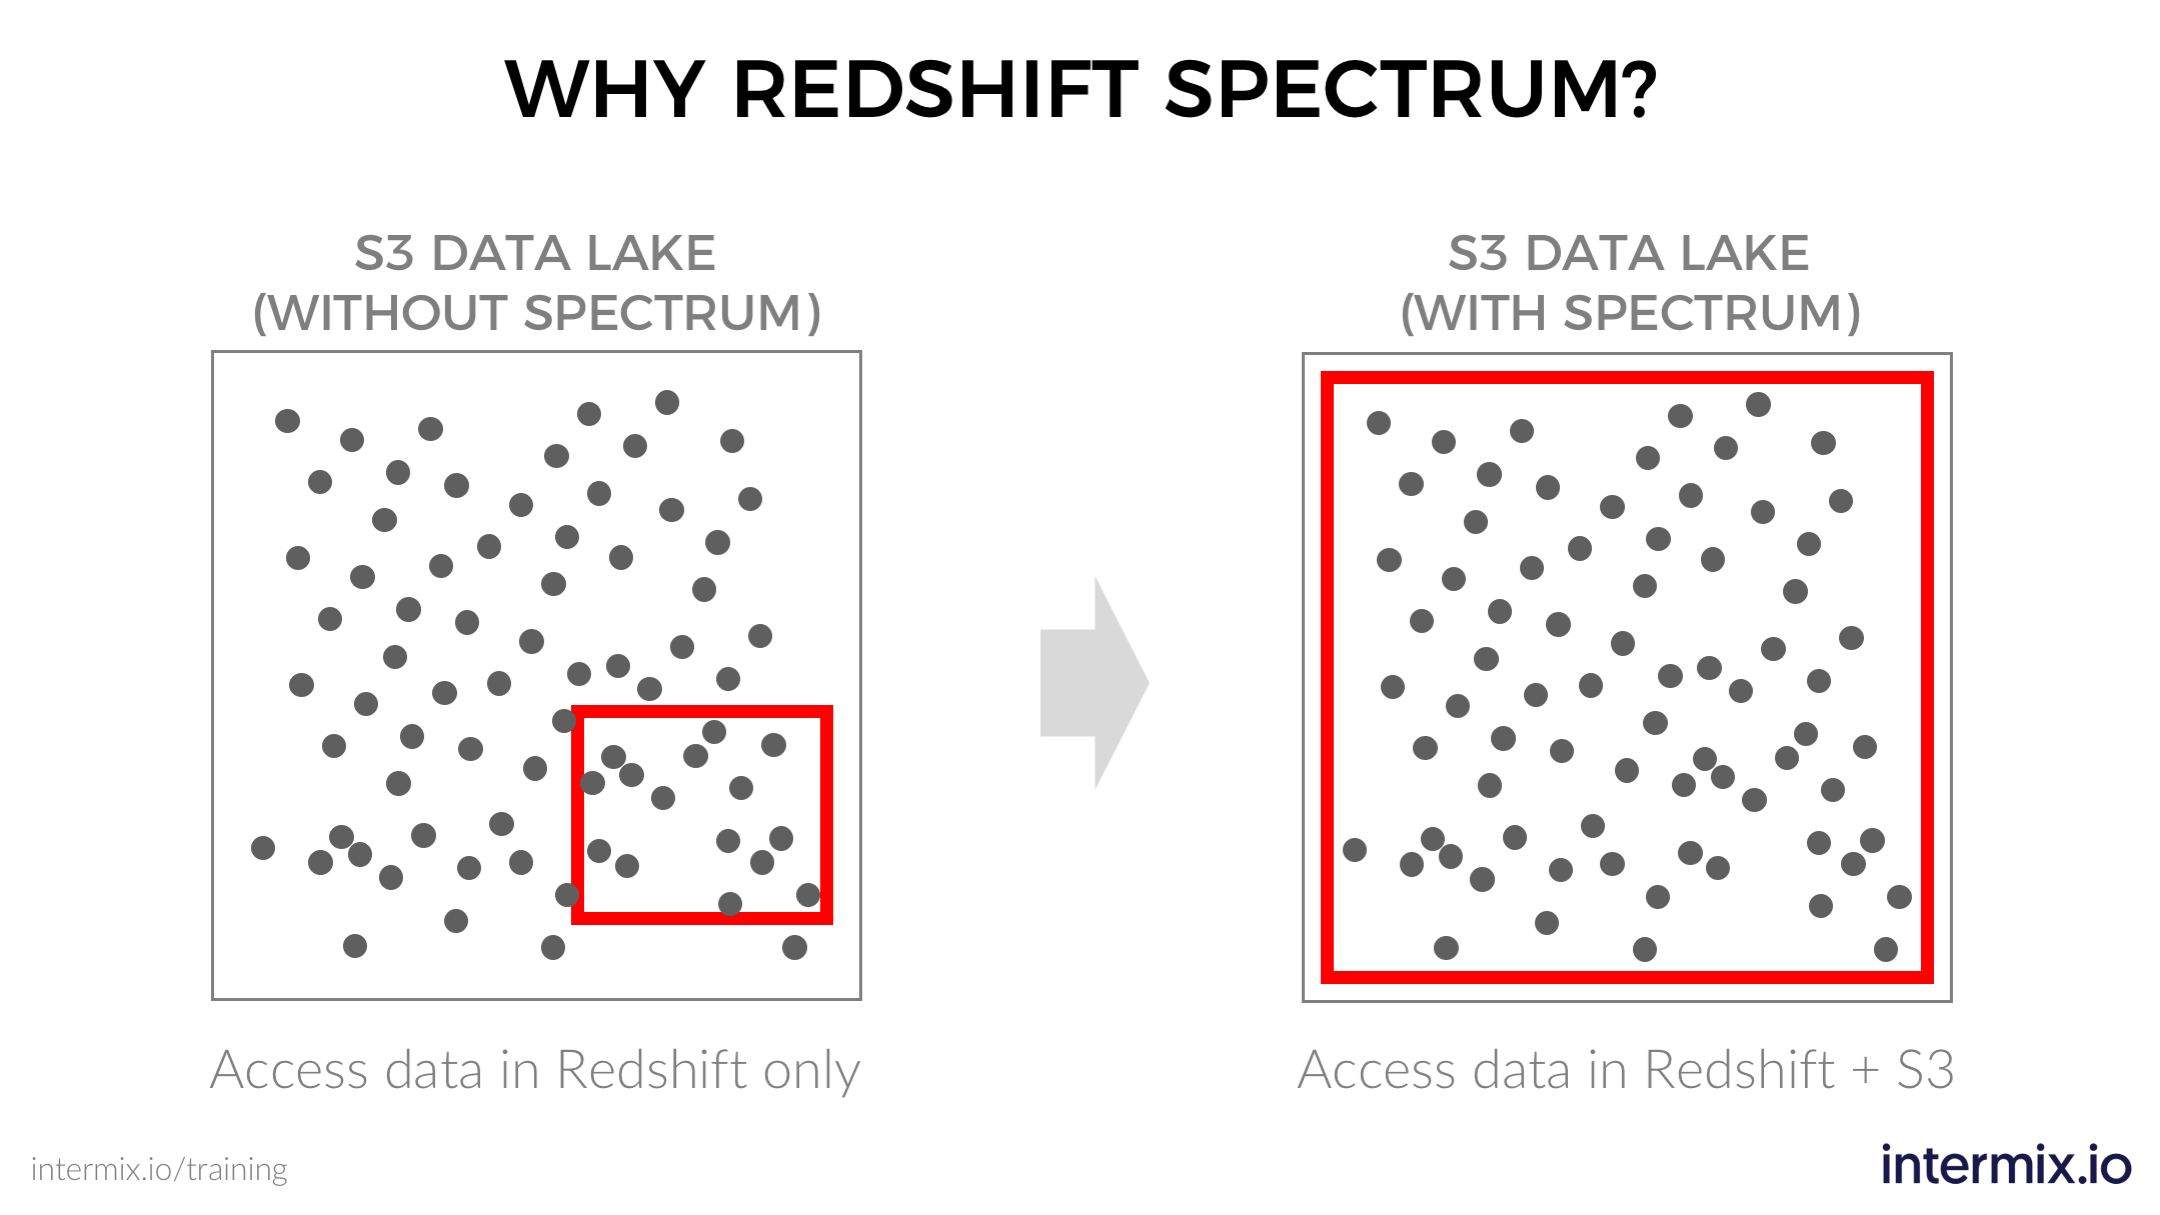 Why Redshift Spectrum